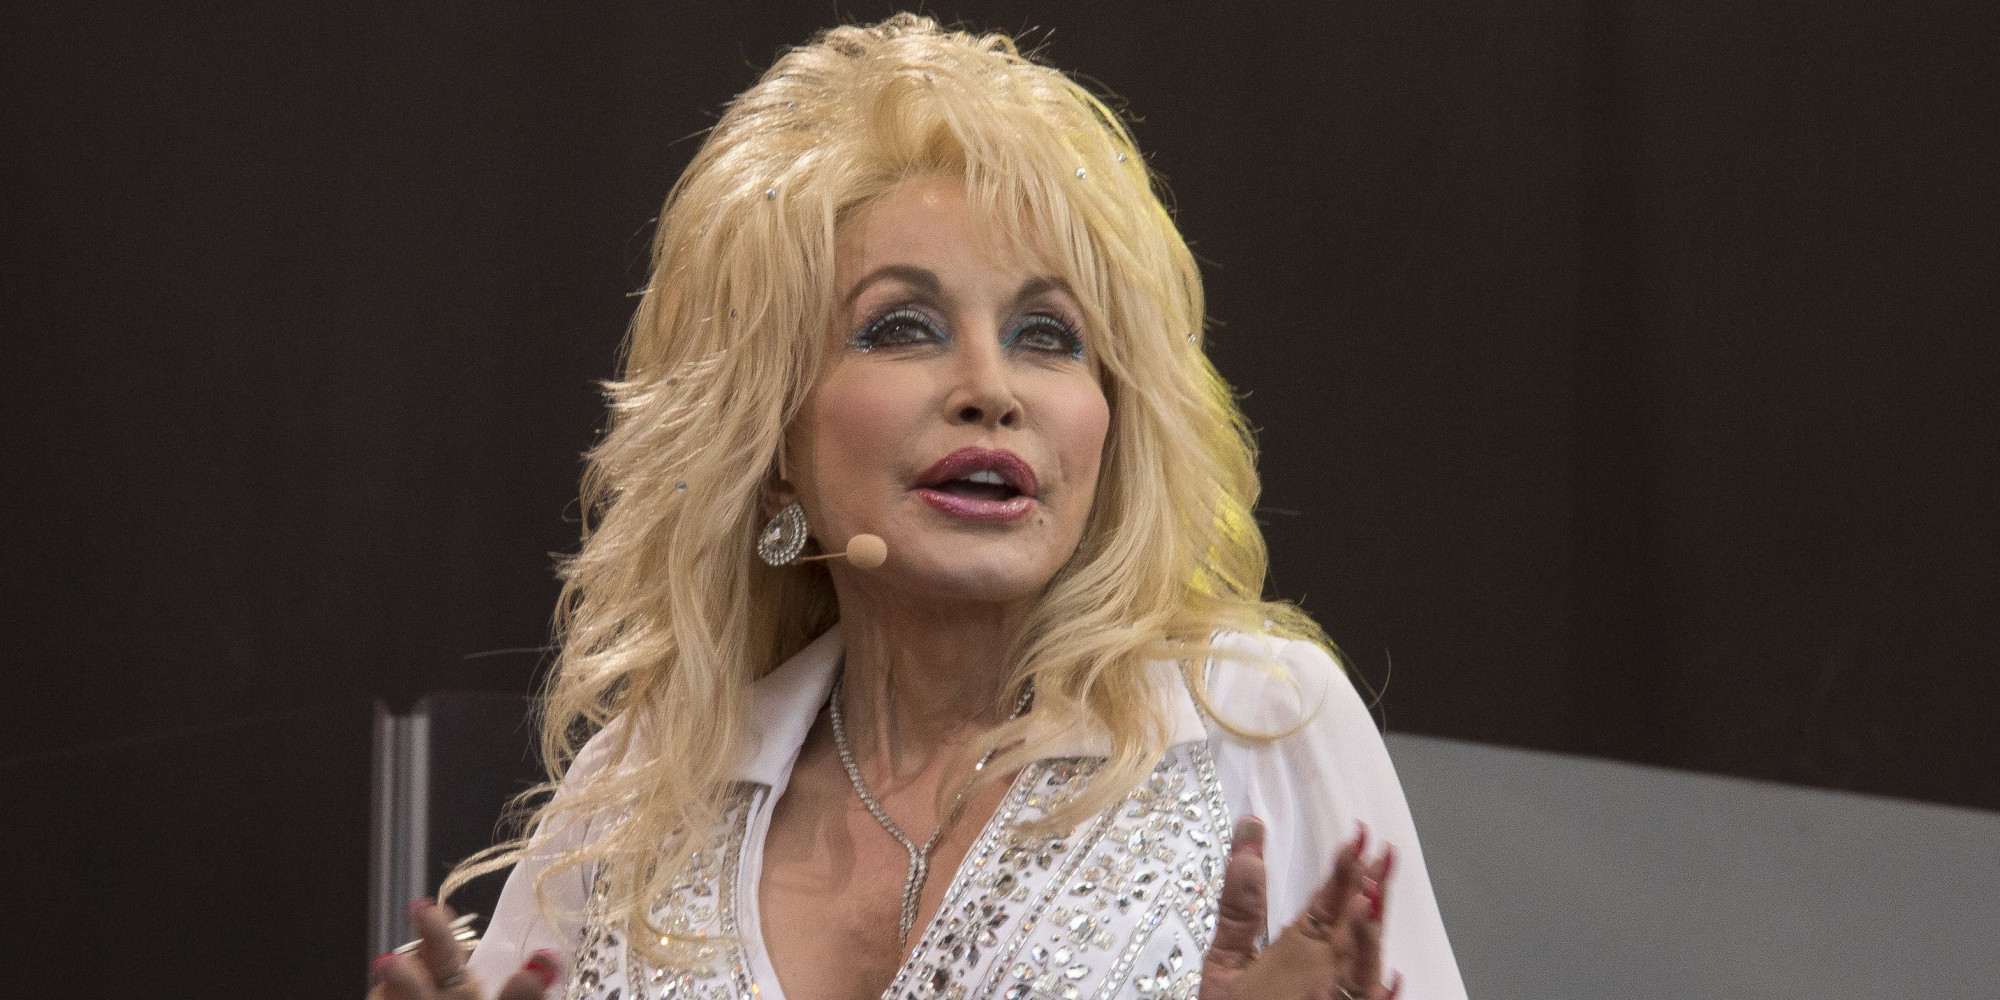 Dolly Parton: Dolly Parton Gives Advice To Transgender Individual In